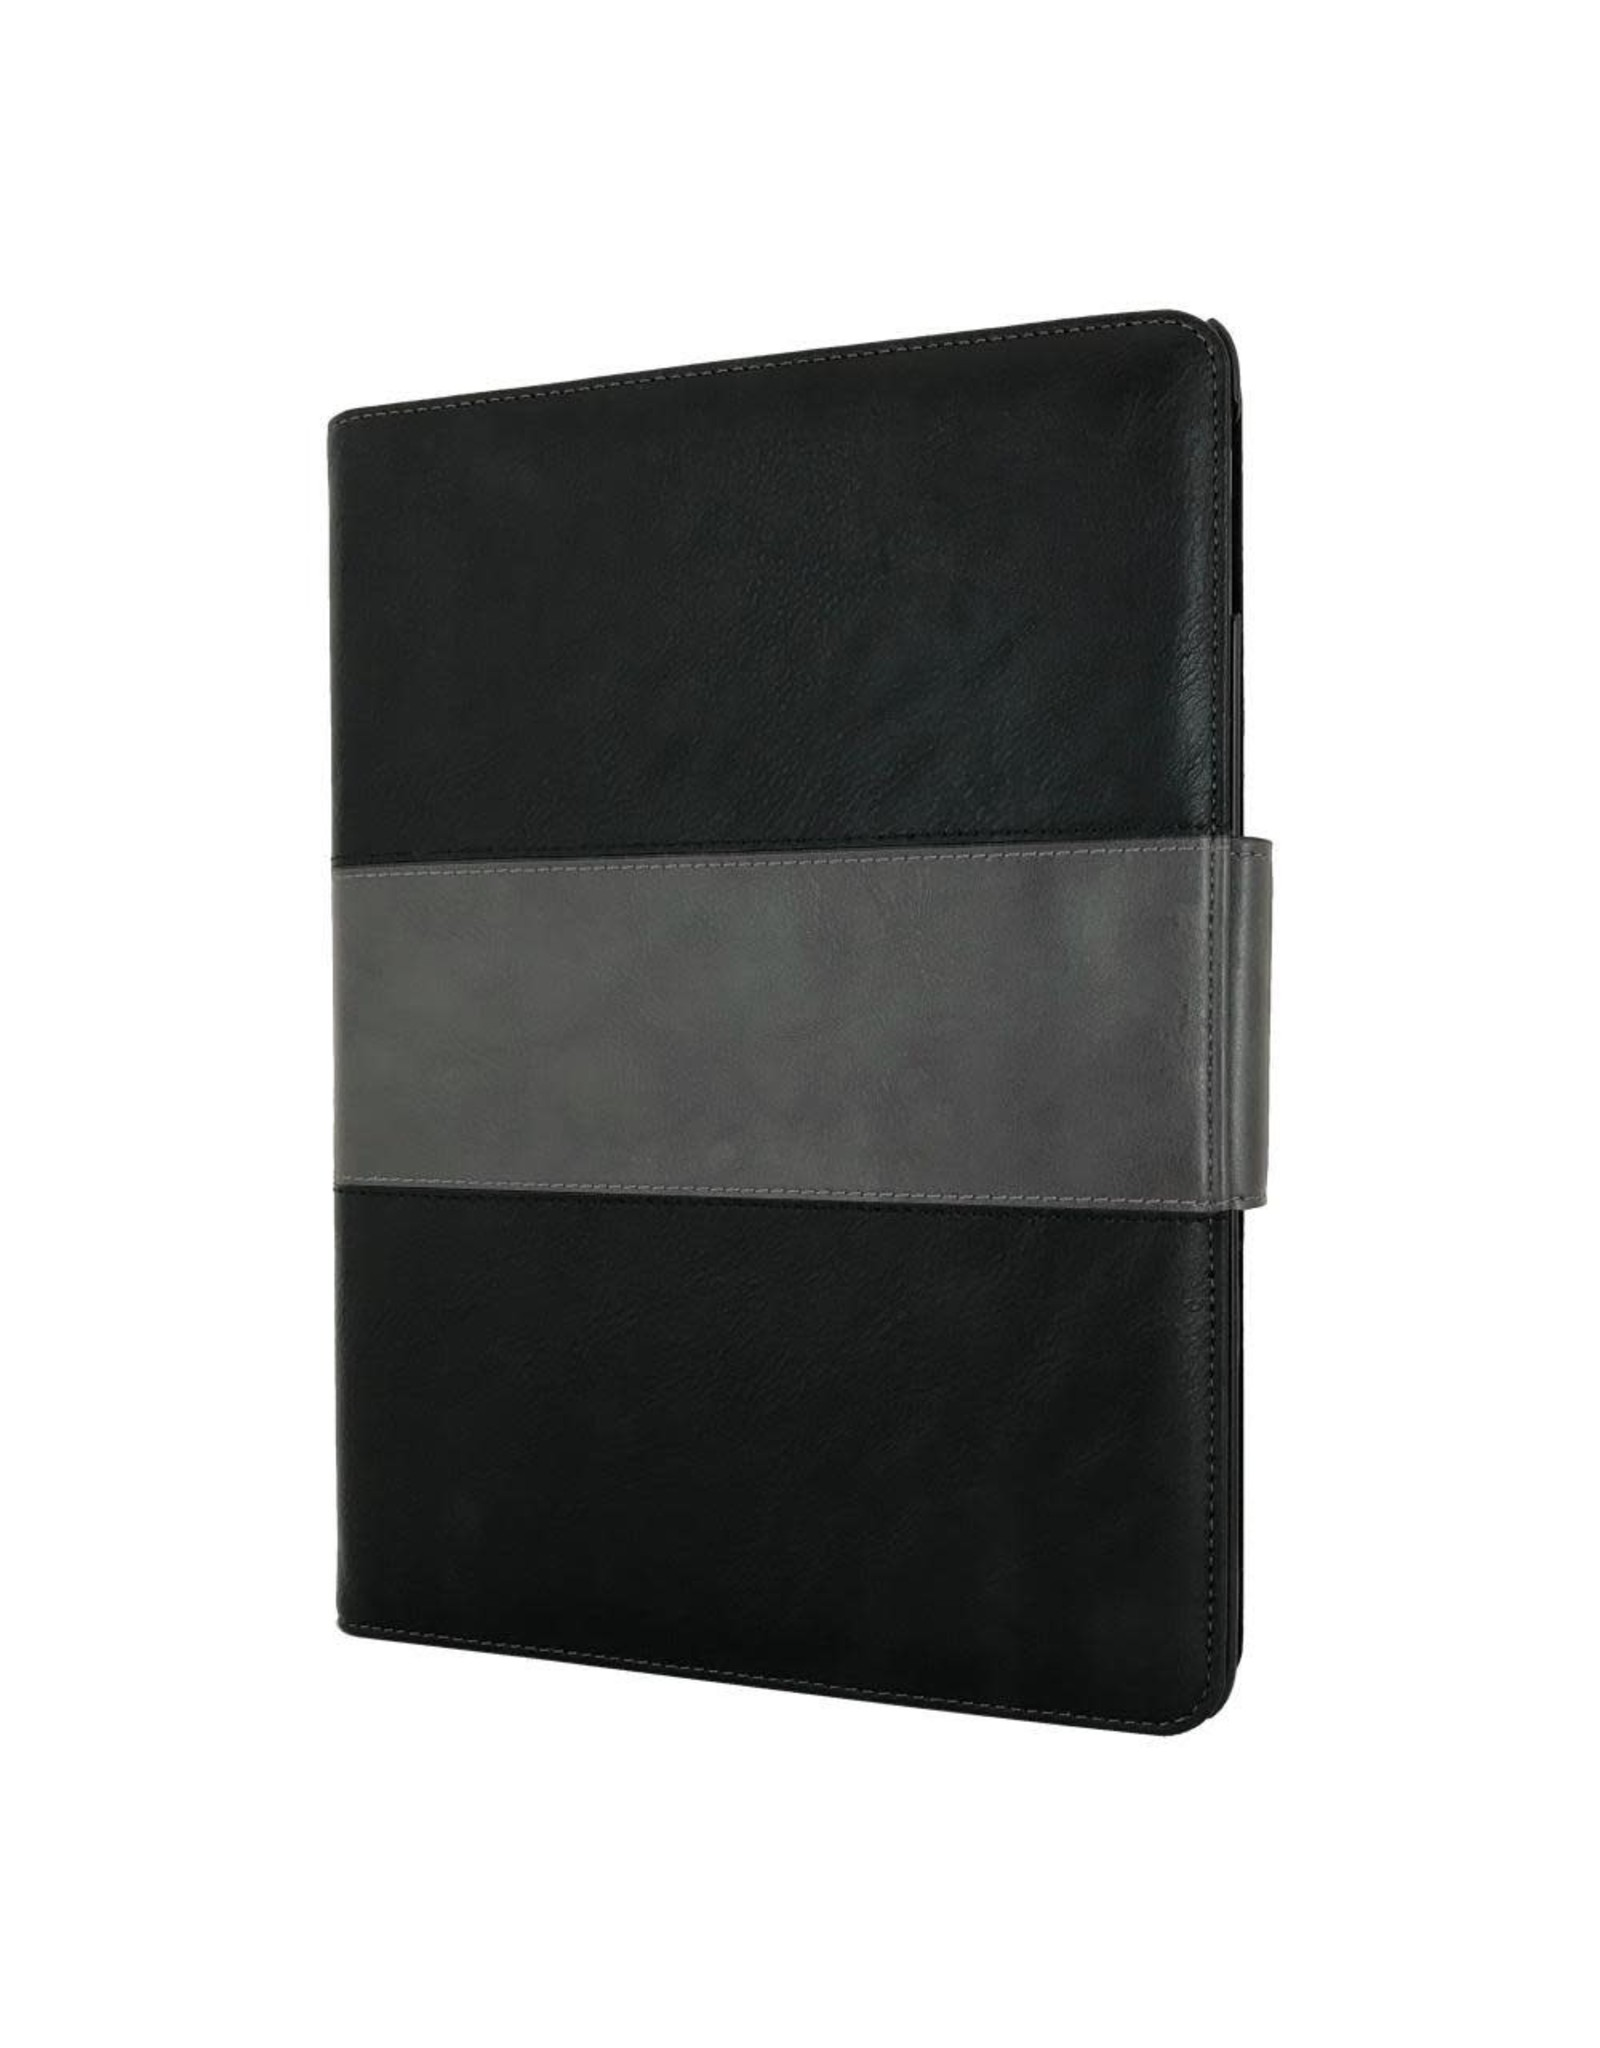 "NVS NVS Apollo Multiview Folio for iPad 9.7""/Air2/Air - Black/Grey"